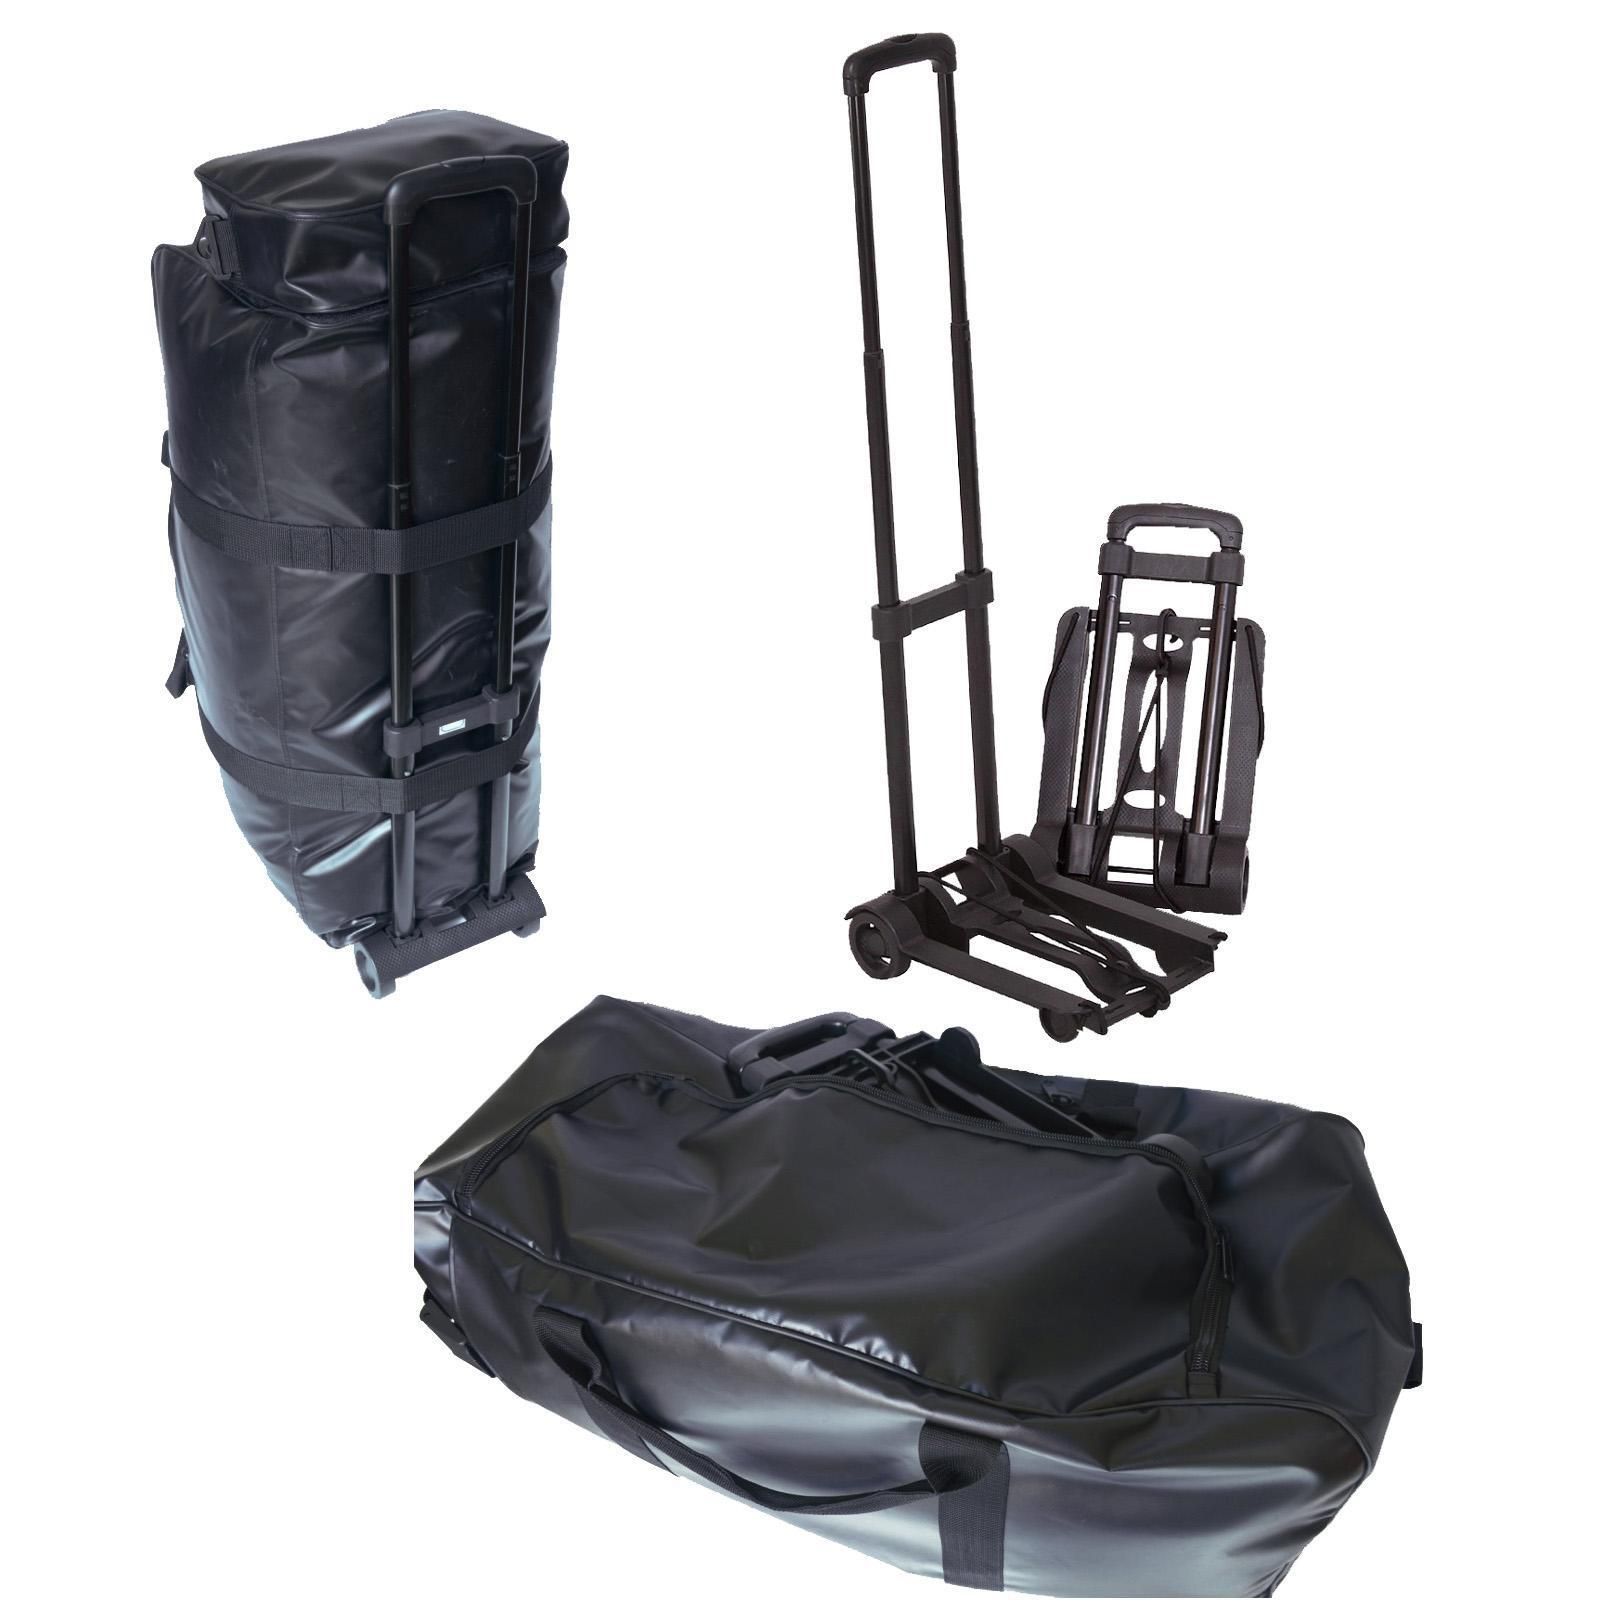 Kurma Historic - Sturdy Diving Bag with Trolley